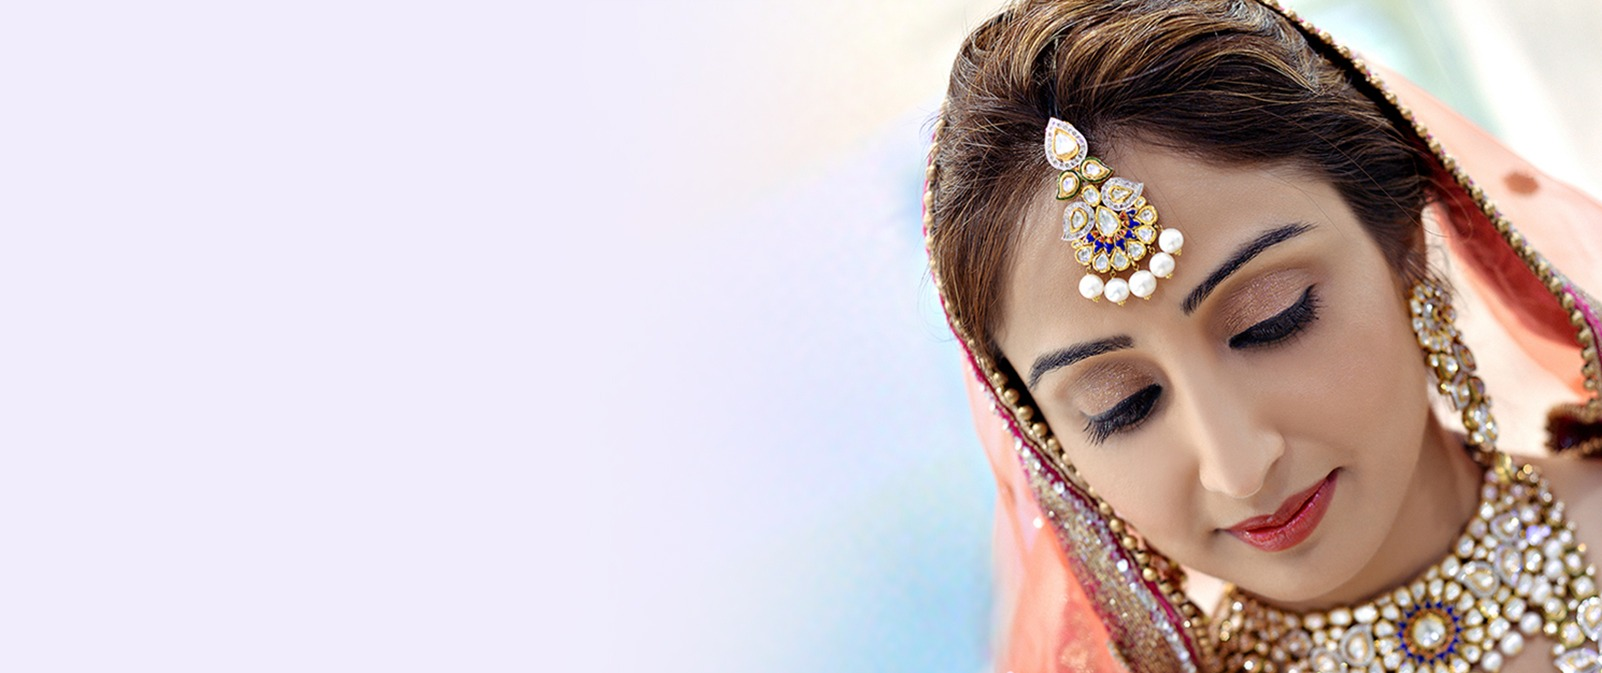 Bridal Makeup Services Karnal- Kittn Salon & Spa - Beauty parlour Karnal +91 184 404 2229 174 – L, Model Town, Karnal, Haryana-132001Bridal Makeup Services Karnal- Kittn Salon & Spa - Beauty parlour Karnal +91 184 404 2229 174 – L, Model Town, Karnal, Haryana-132001